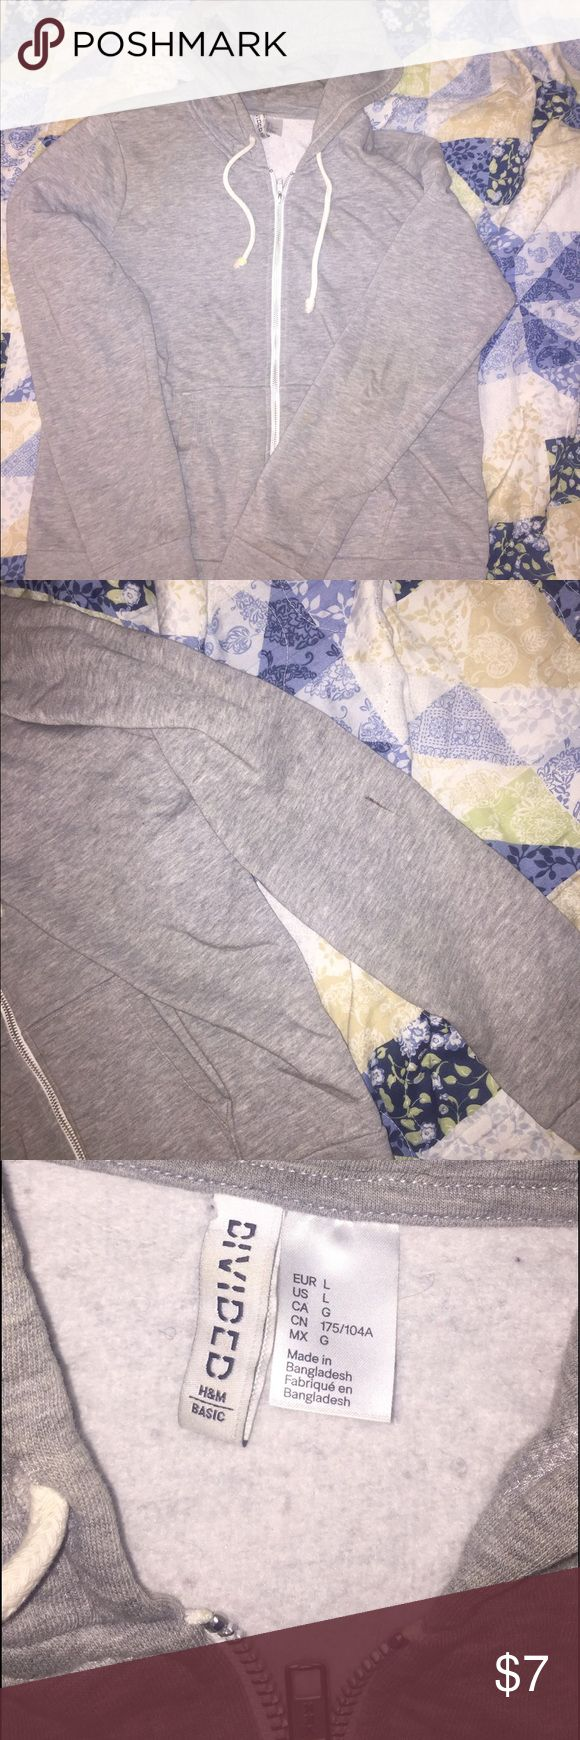 Women's Zip Up Hoodie Grey hoodie. There's a black crayon drawing on left sleeve & the right drawstring is a lil dirty it just needs to be washed but it's my sisters so she doesn't really want it anymore. Price is firm & as low as she will go  🕘Purchased date : Unknown  ✅Condition : 5/10 🚛 Ship Time : Same Day or Next 😄Feel free to comment or share!! H&M Jackets & Coats